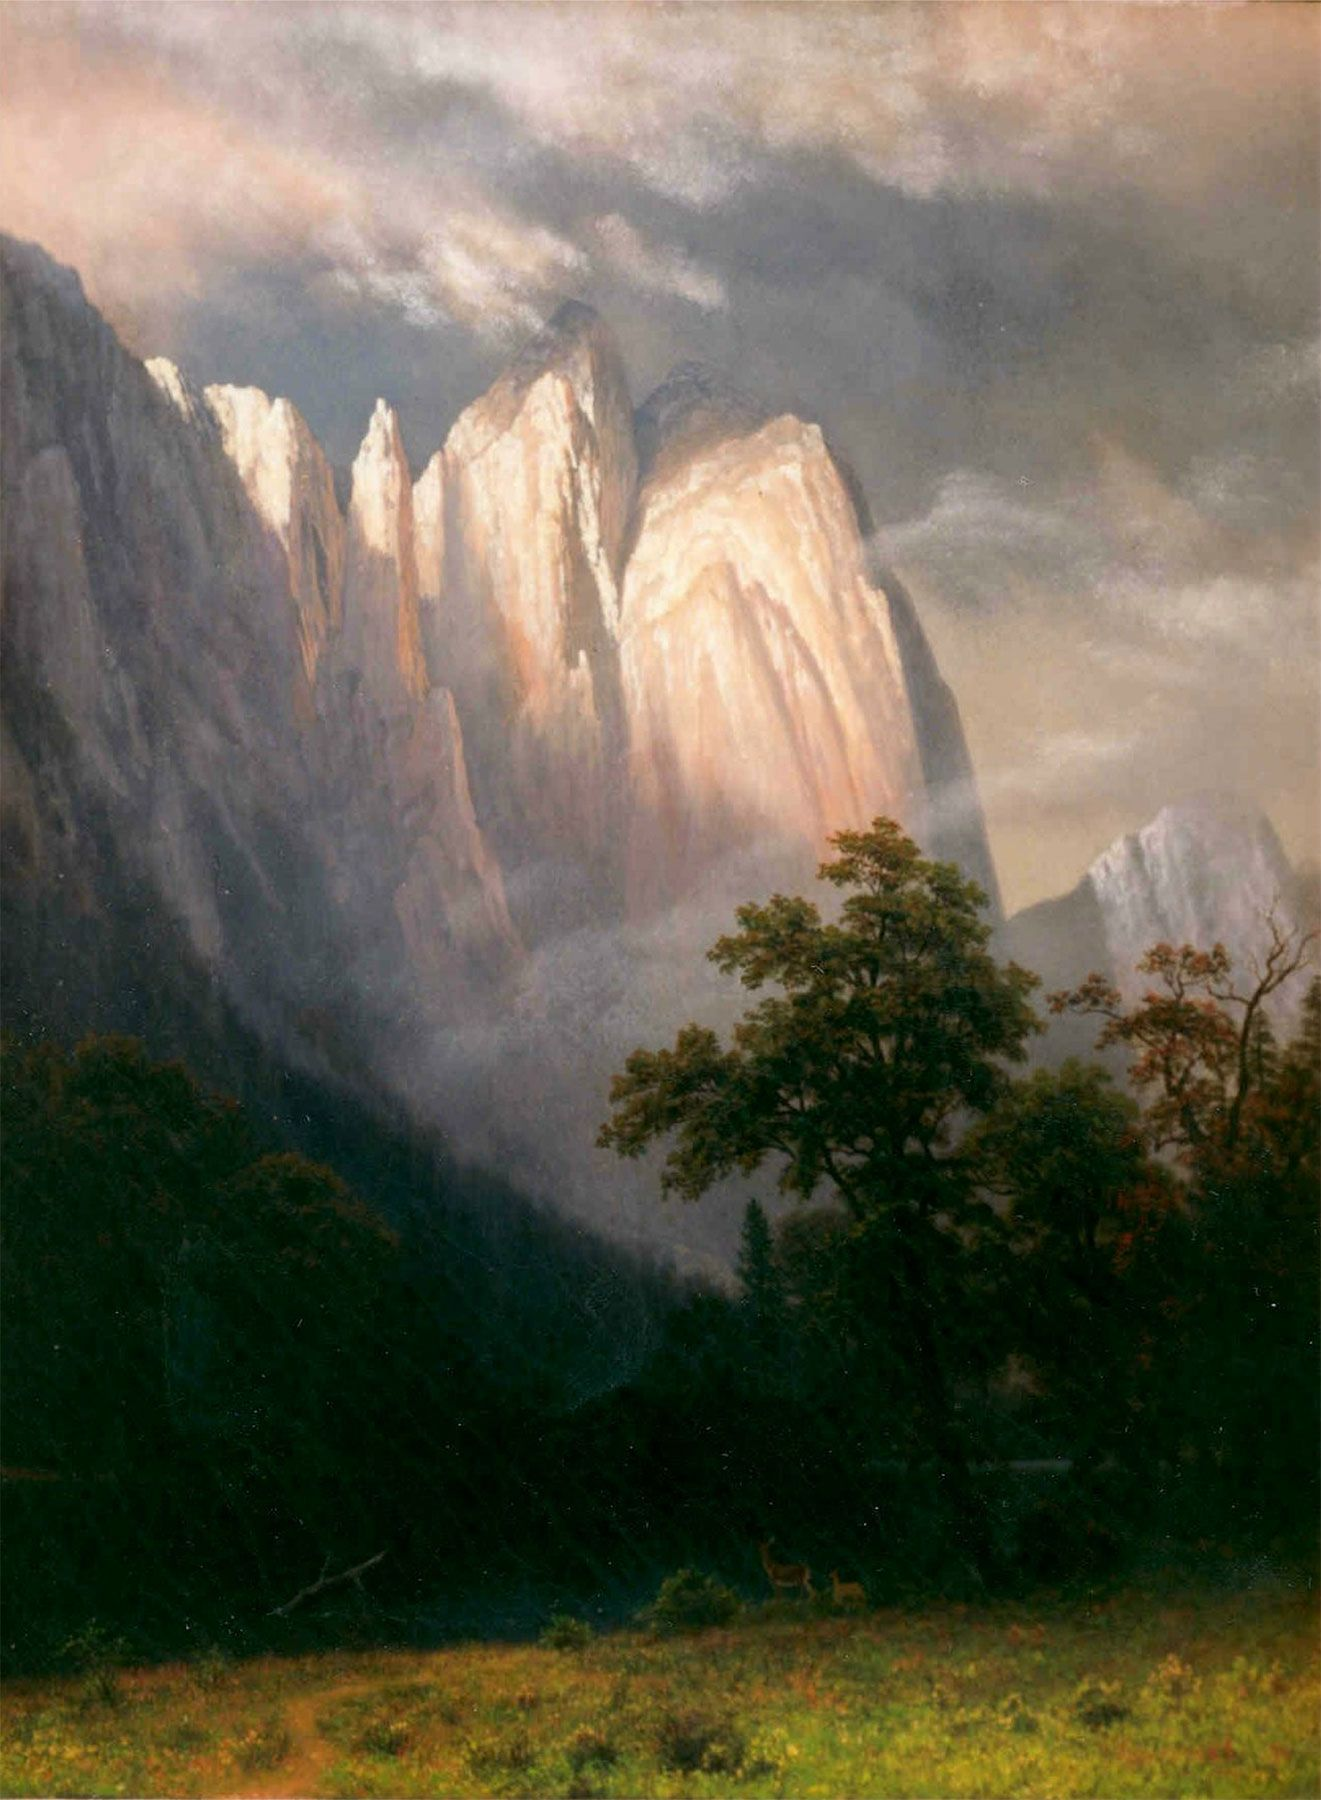 National Park Service Treasured Landscapes: Art Collections Tell America's Stories